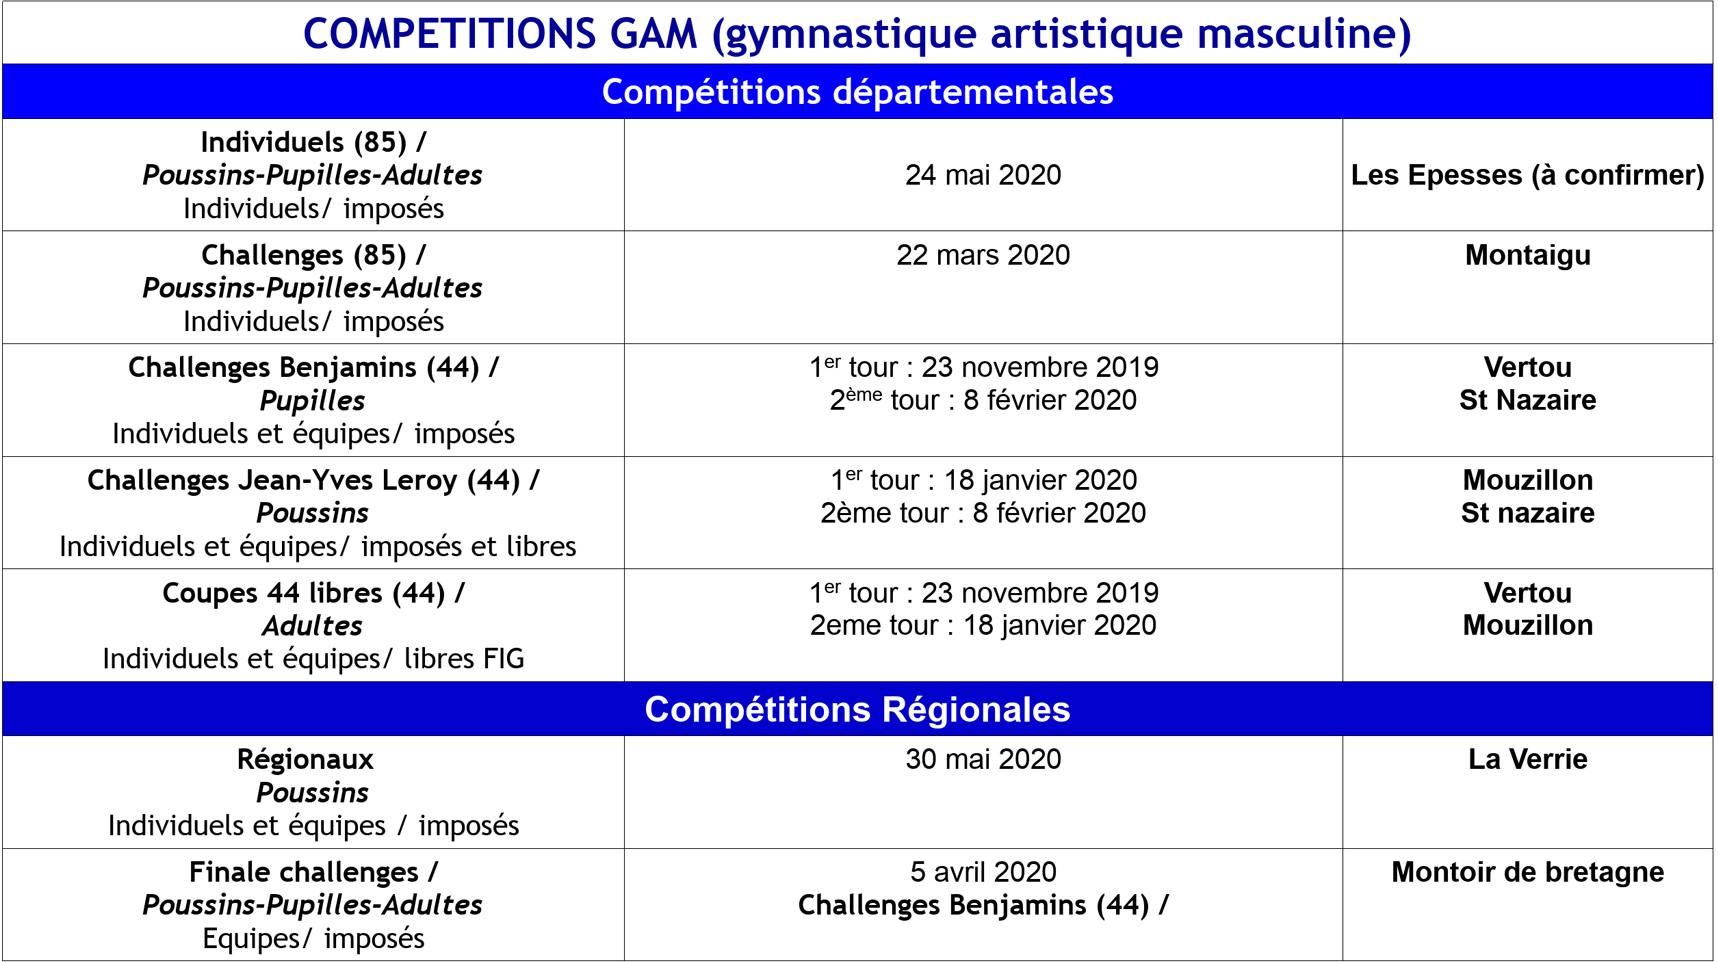 GAM gym competitions 2019 2020 3